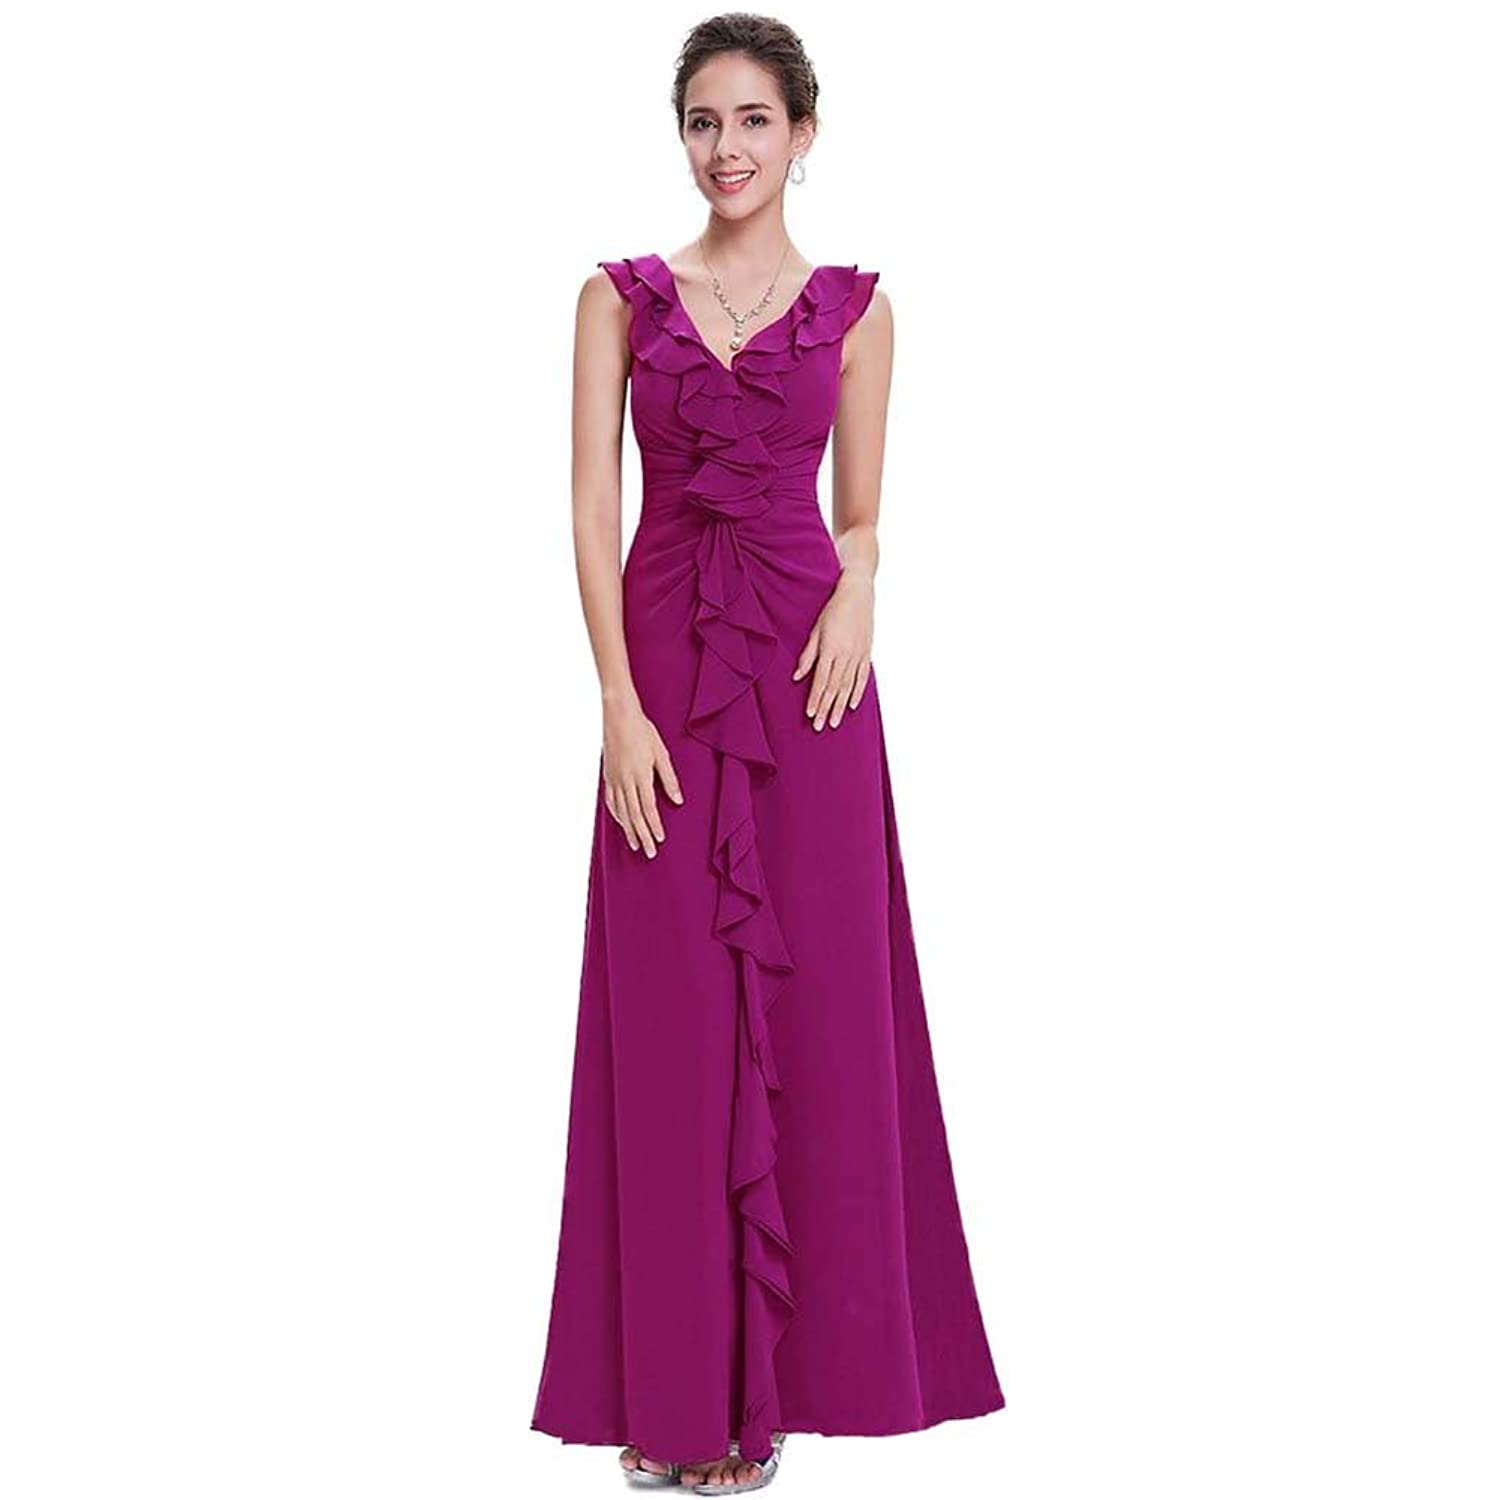 Ishop Womens Elegant Silk Evening Plus Size Dresses Size